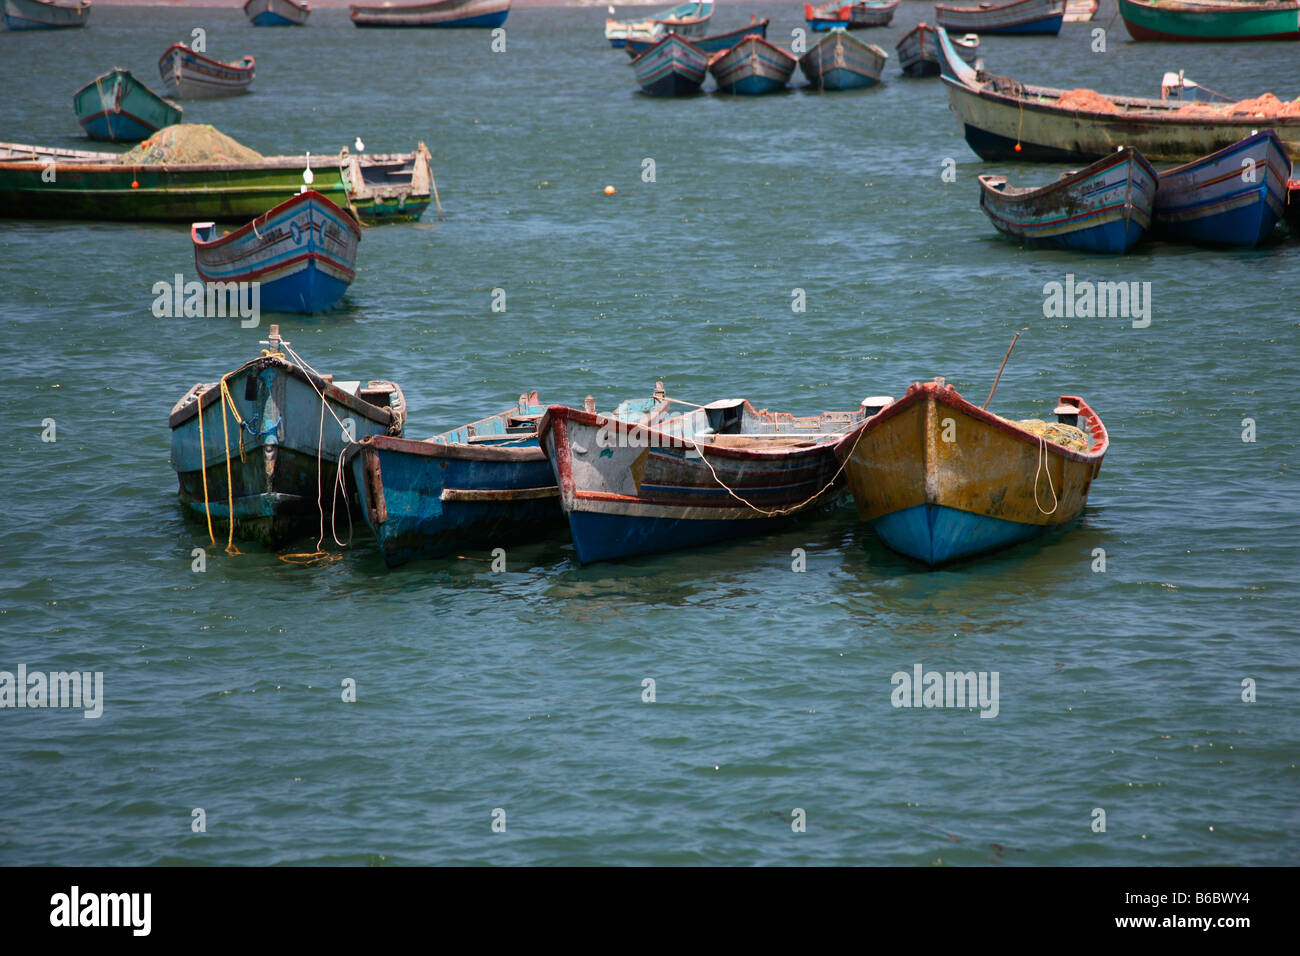 Fishing boats in Vizhinjam Harbour,Kerala,India - Stock Image